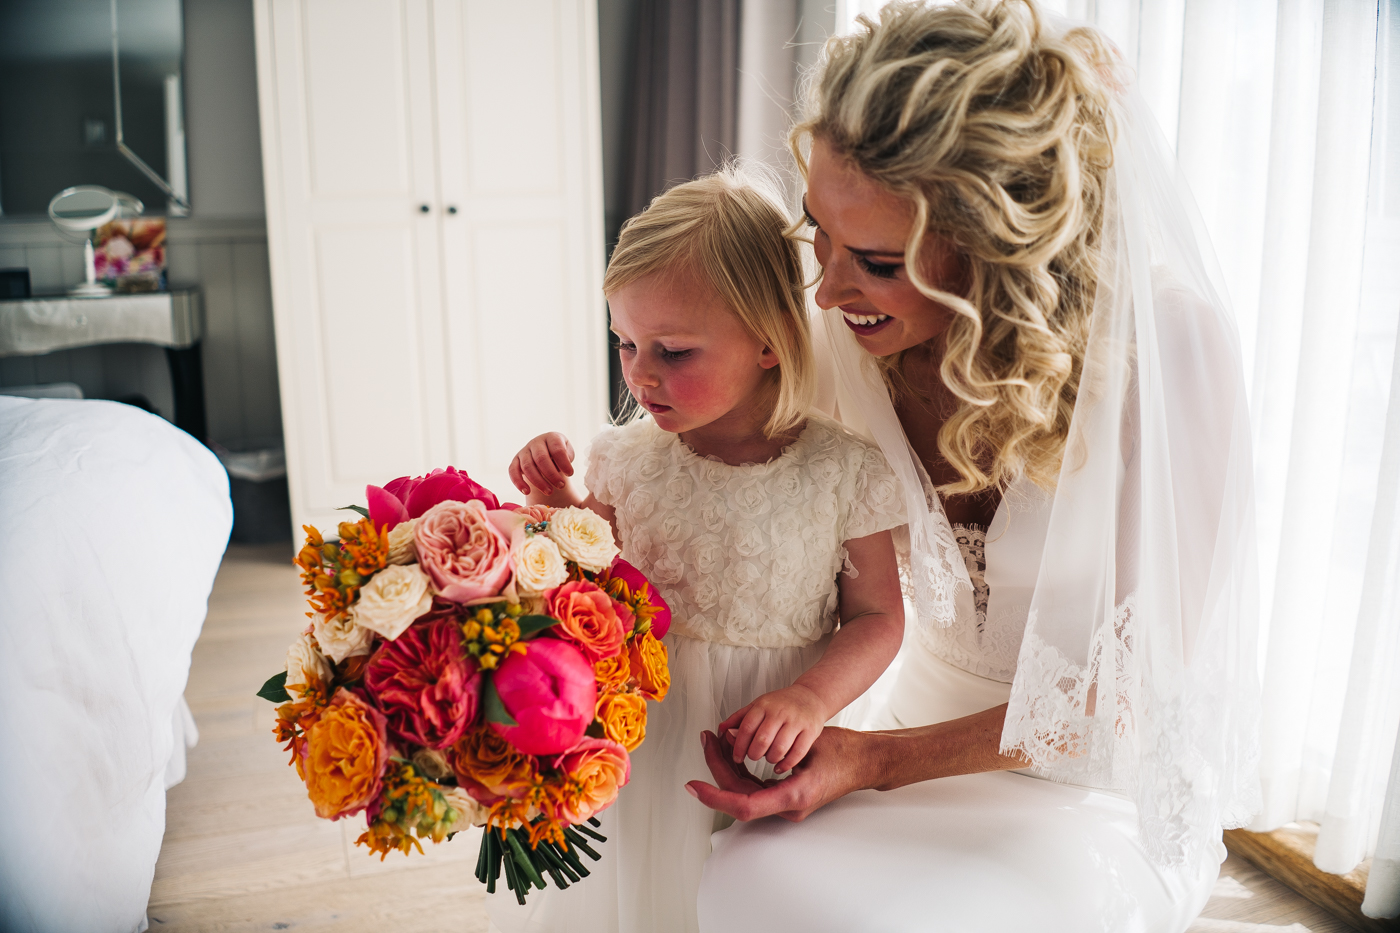 a bride and her flower girl cuddle and look at her bouquet. photo by sally t photography, wedding at ever after, tavistock, devon photographer